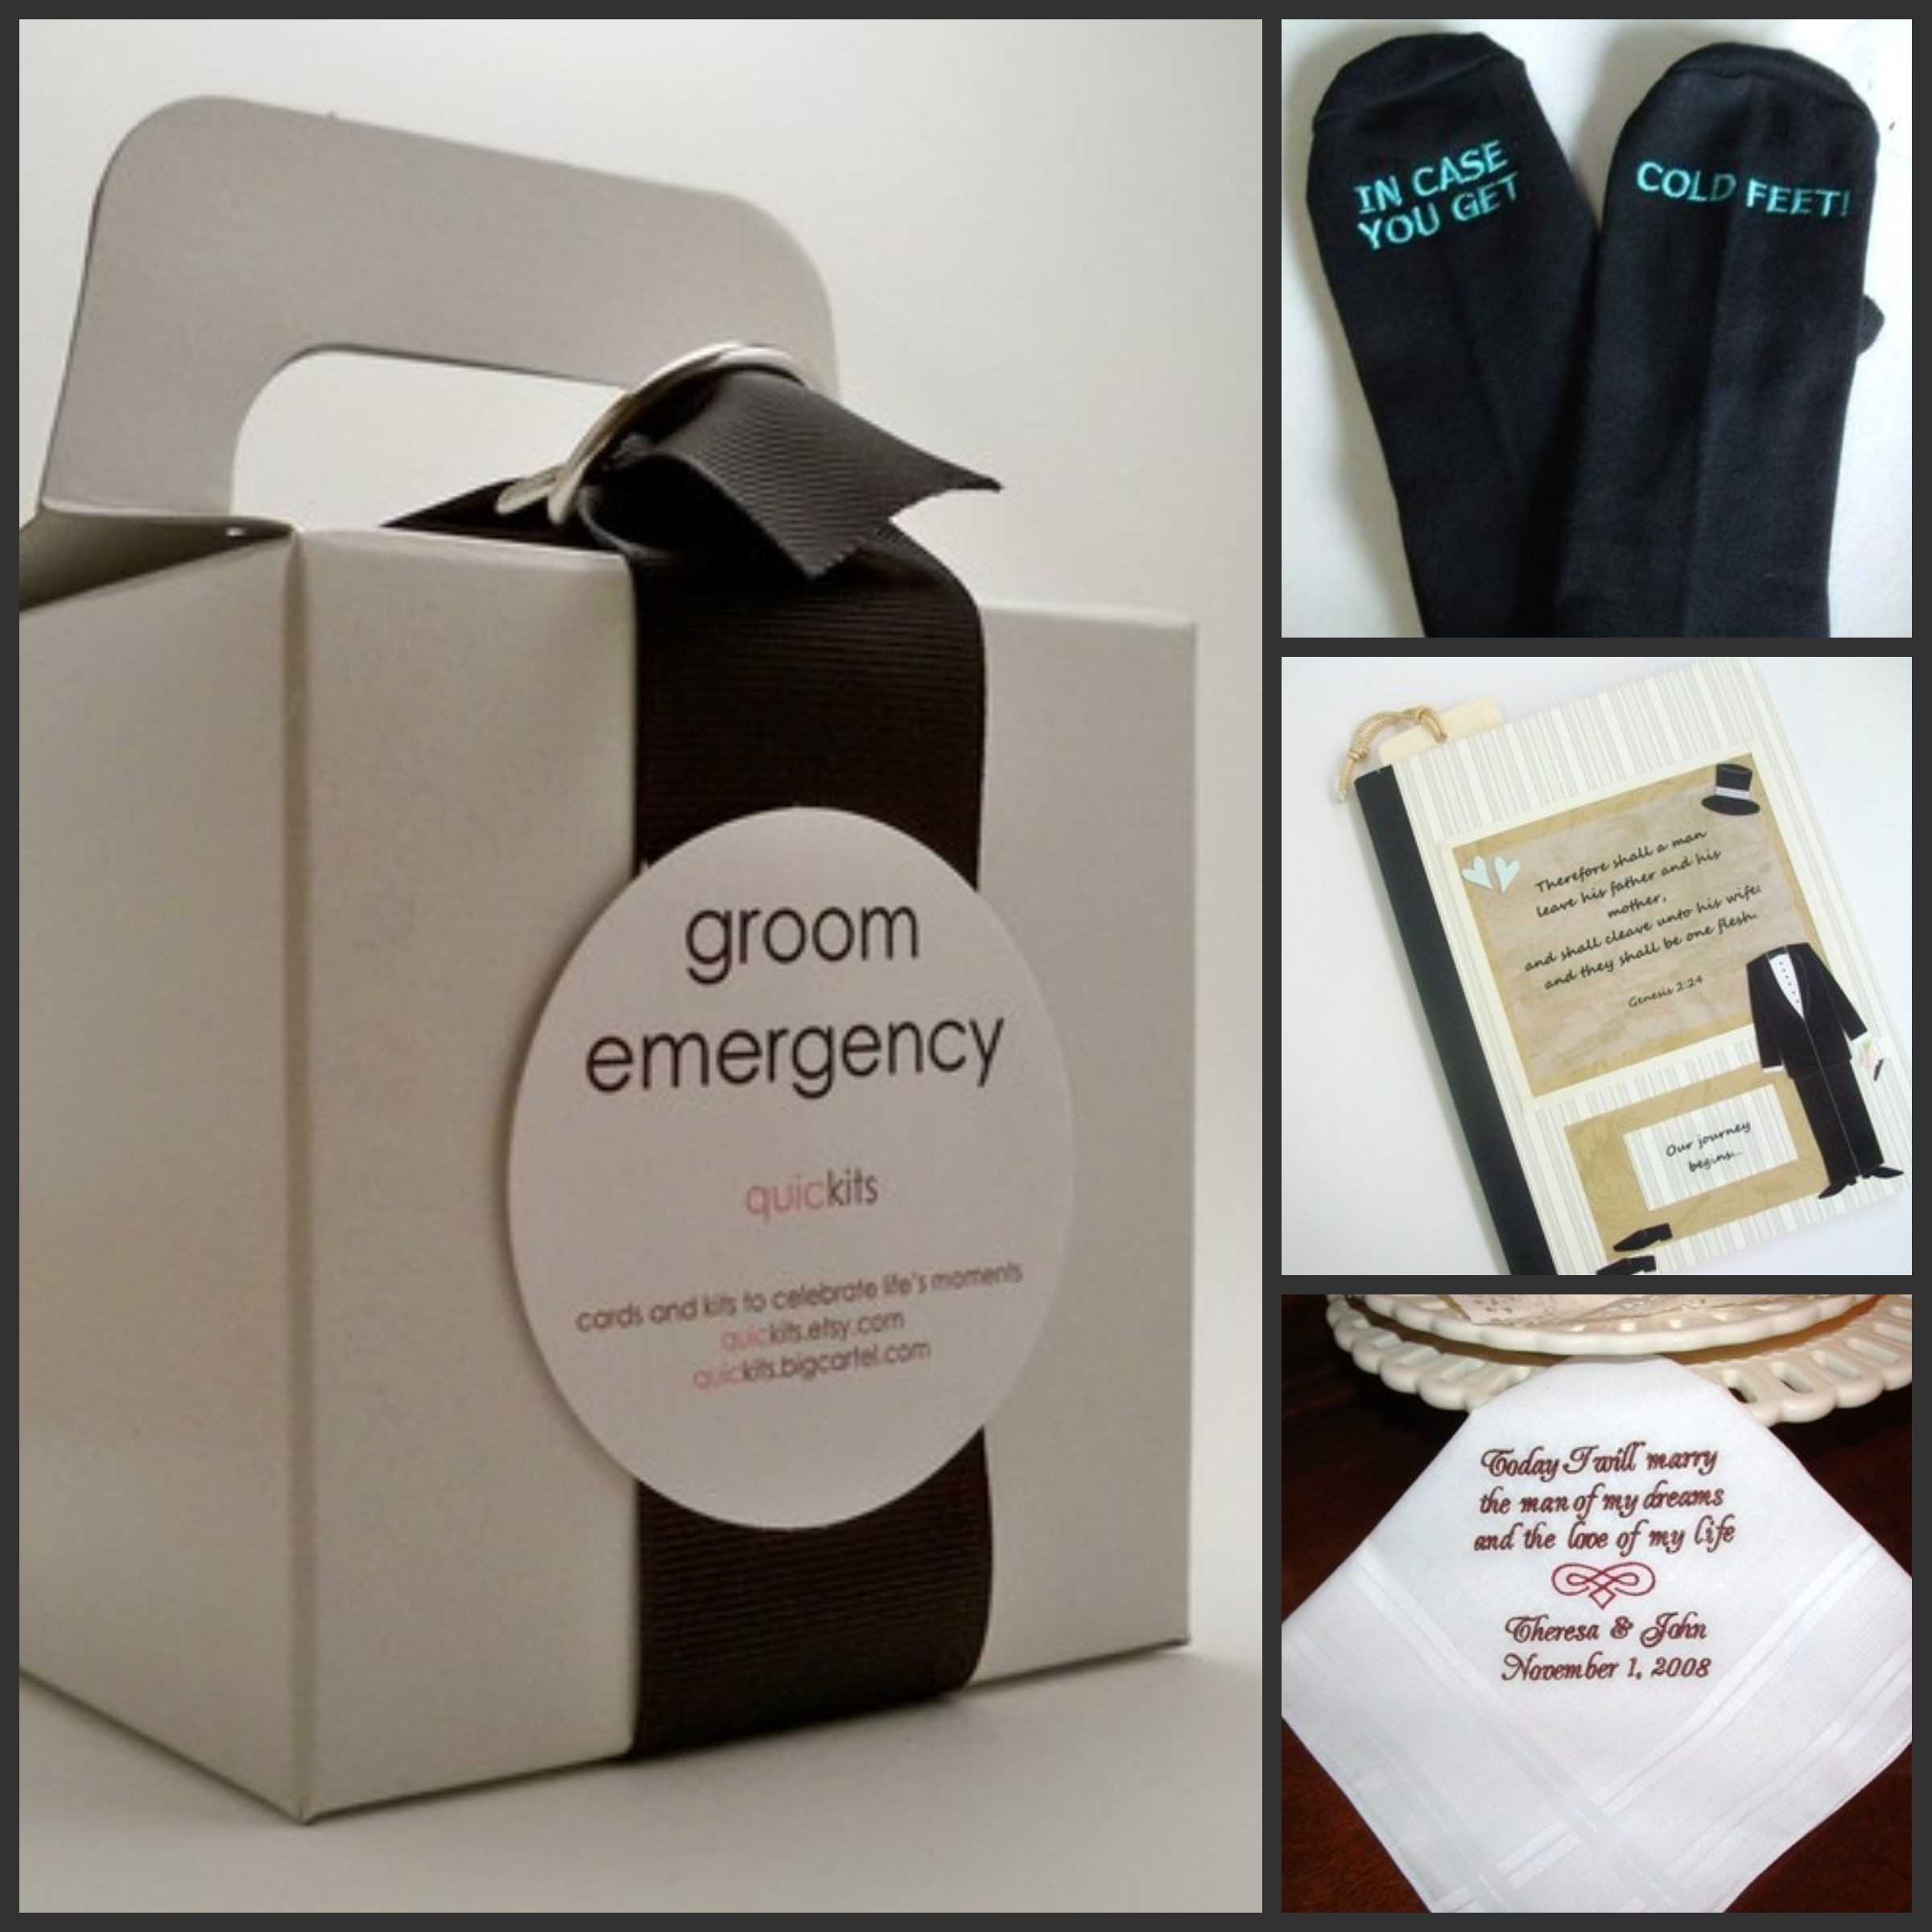 Best ideas about Wedding Gift Ideas For Groom From Bride . Save or Pin Groom ts Now.